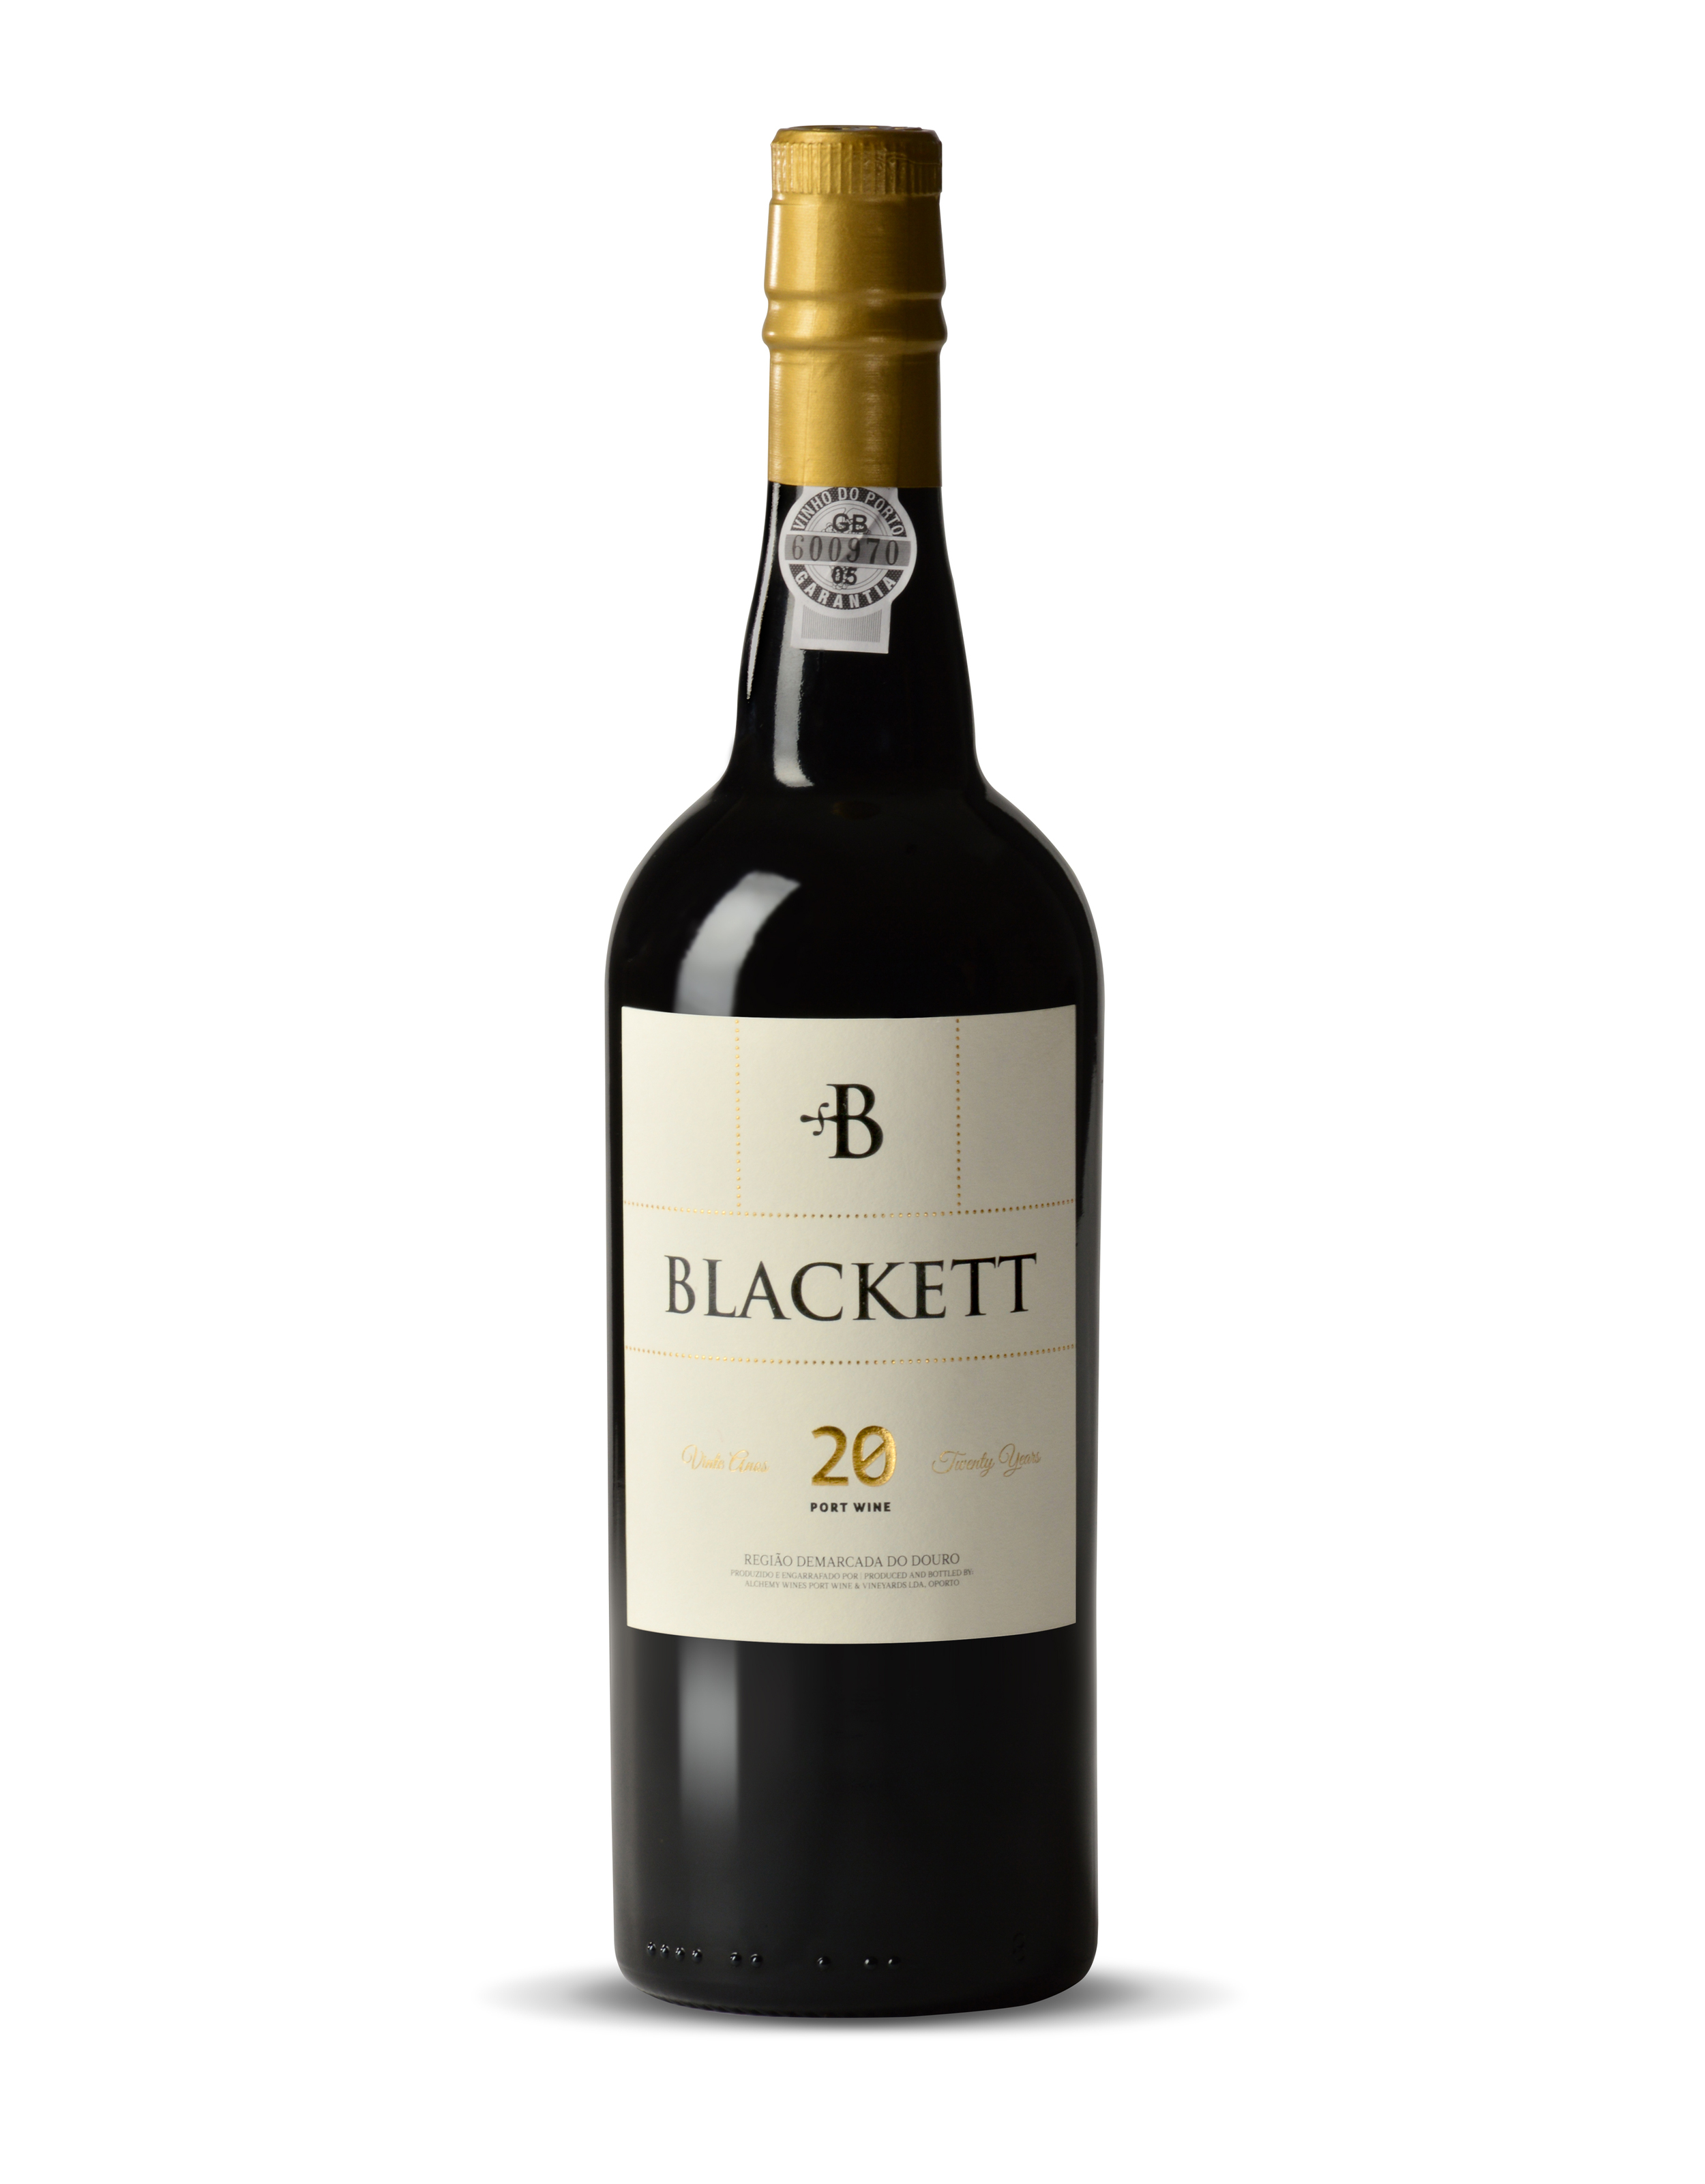 Blackett_20_anos_M.jpg